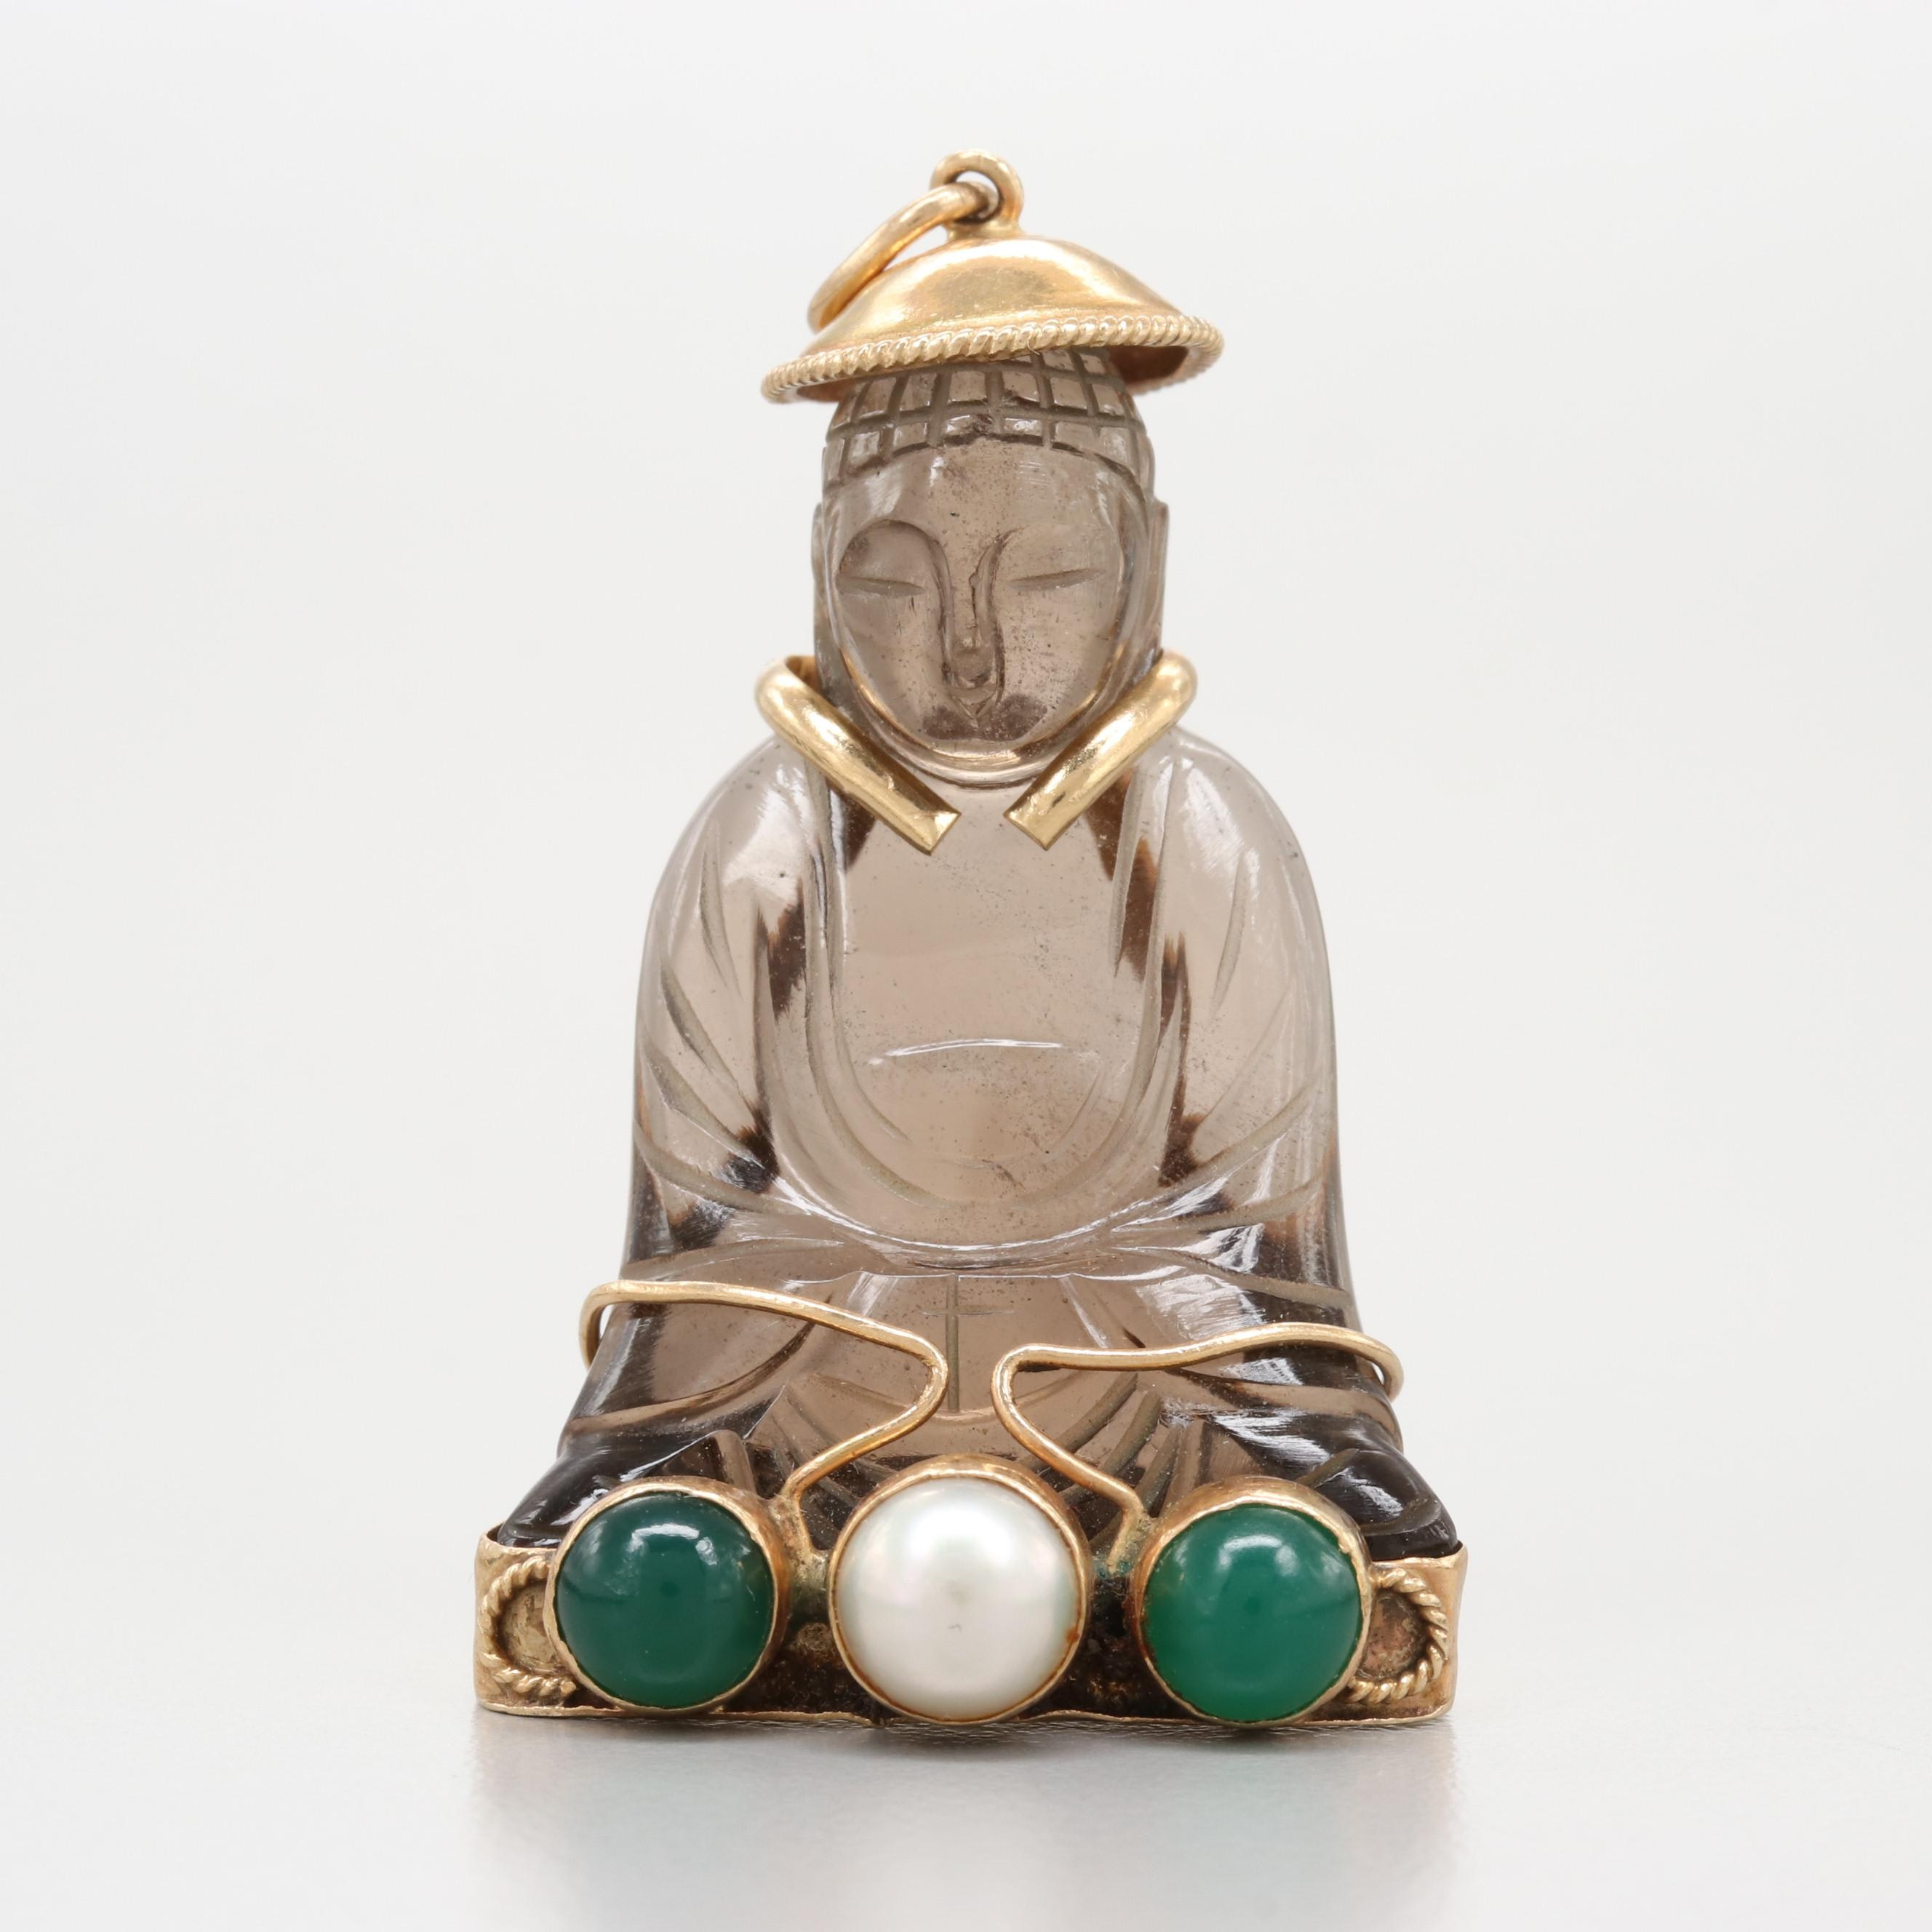 14K Yellow Gold Pendant with Seated Buddha Smoky Quartz and Gemstone Accents